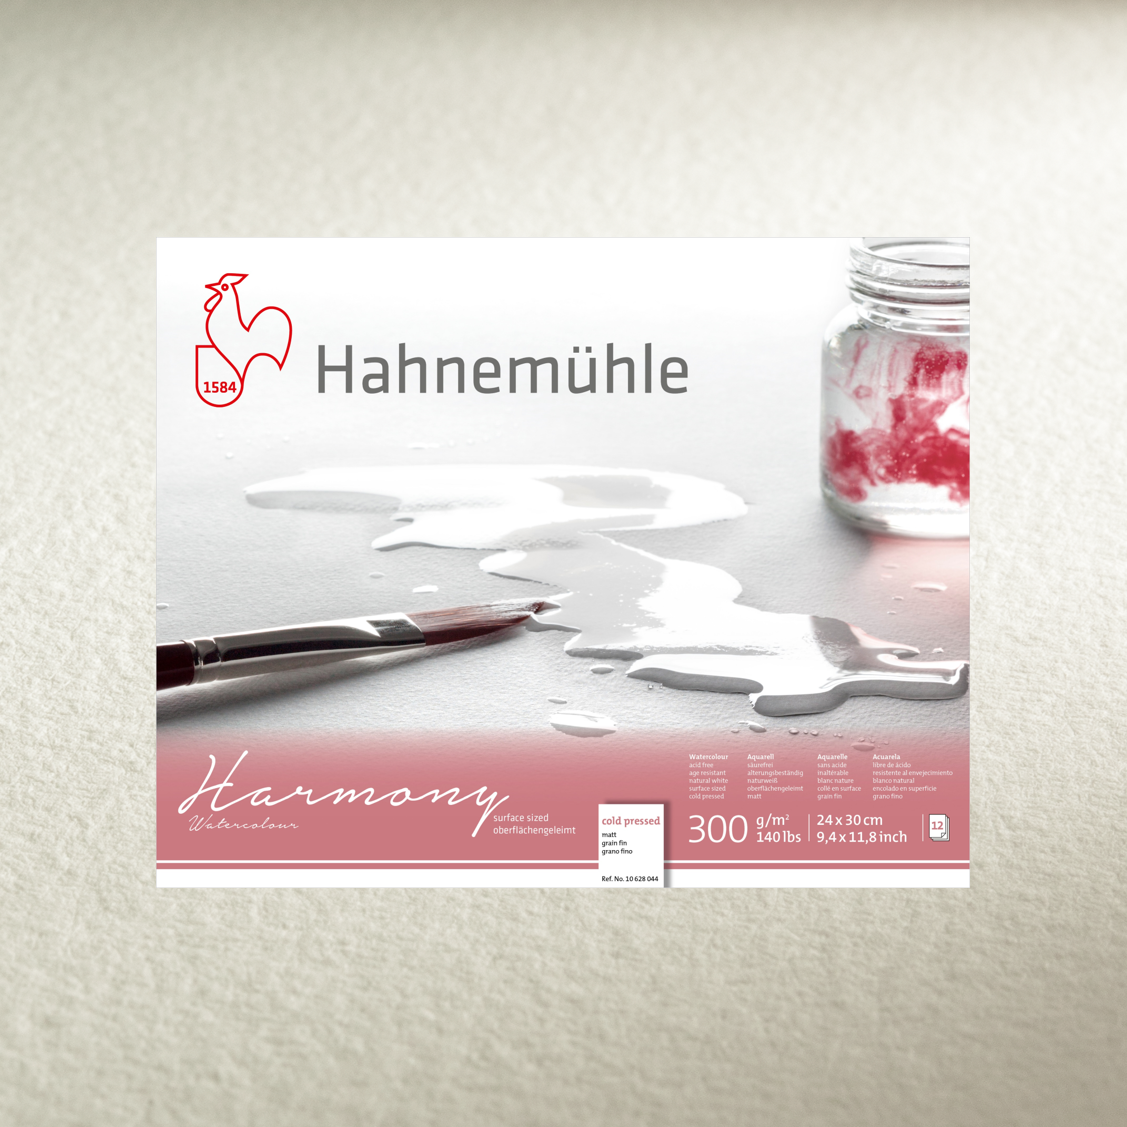 Hahnemühle 'Harmony' Watercolour Blocks - COLD PRESSED - 300gsm